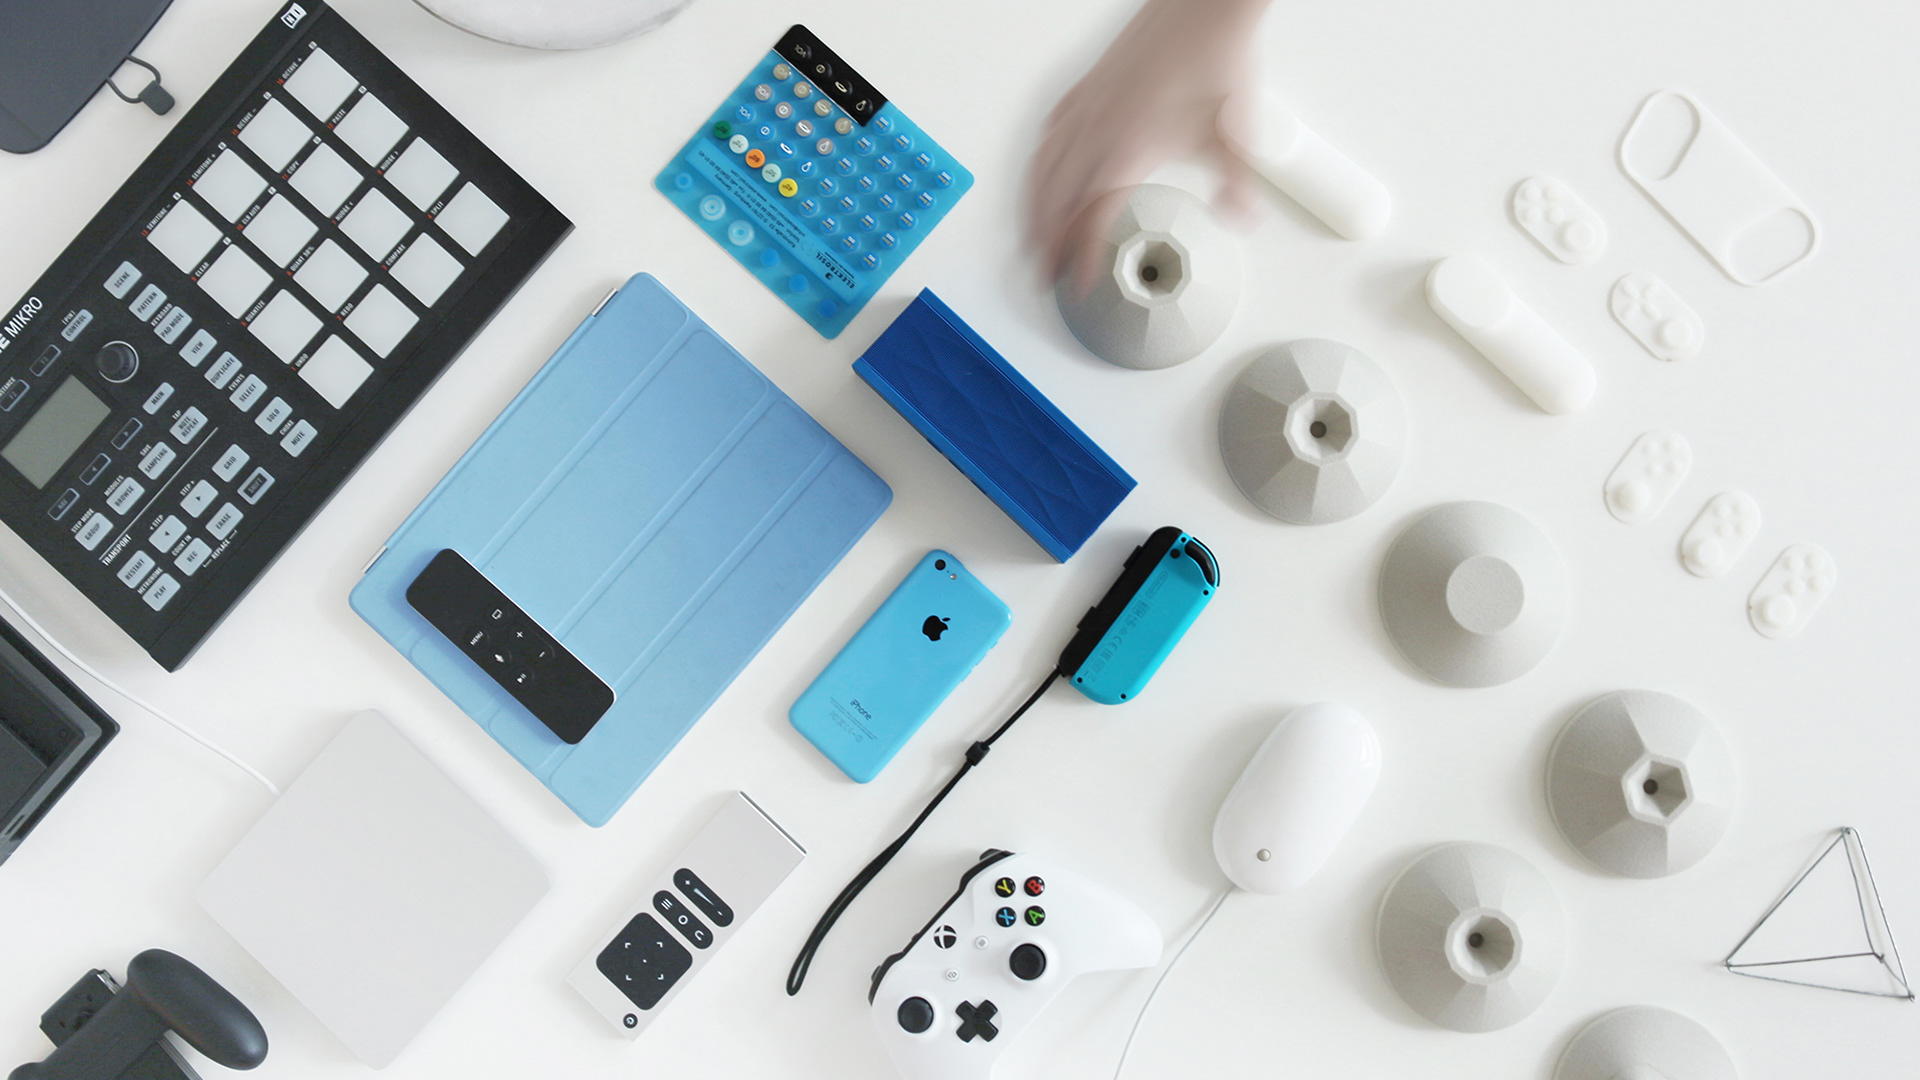 Industrial Design: PLAY, an innovative gaming kit